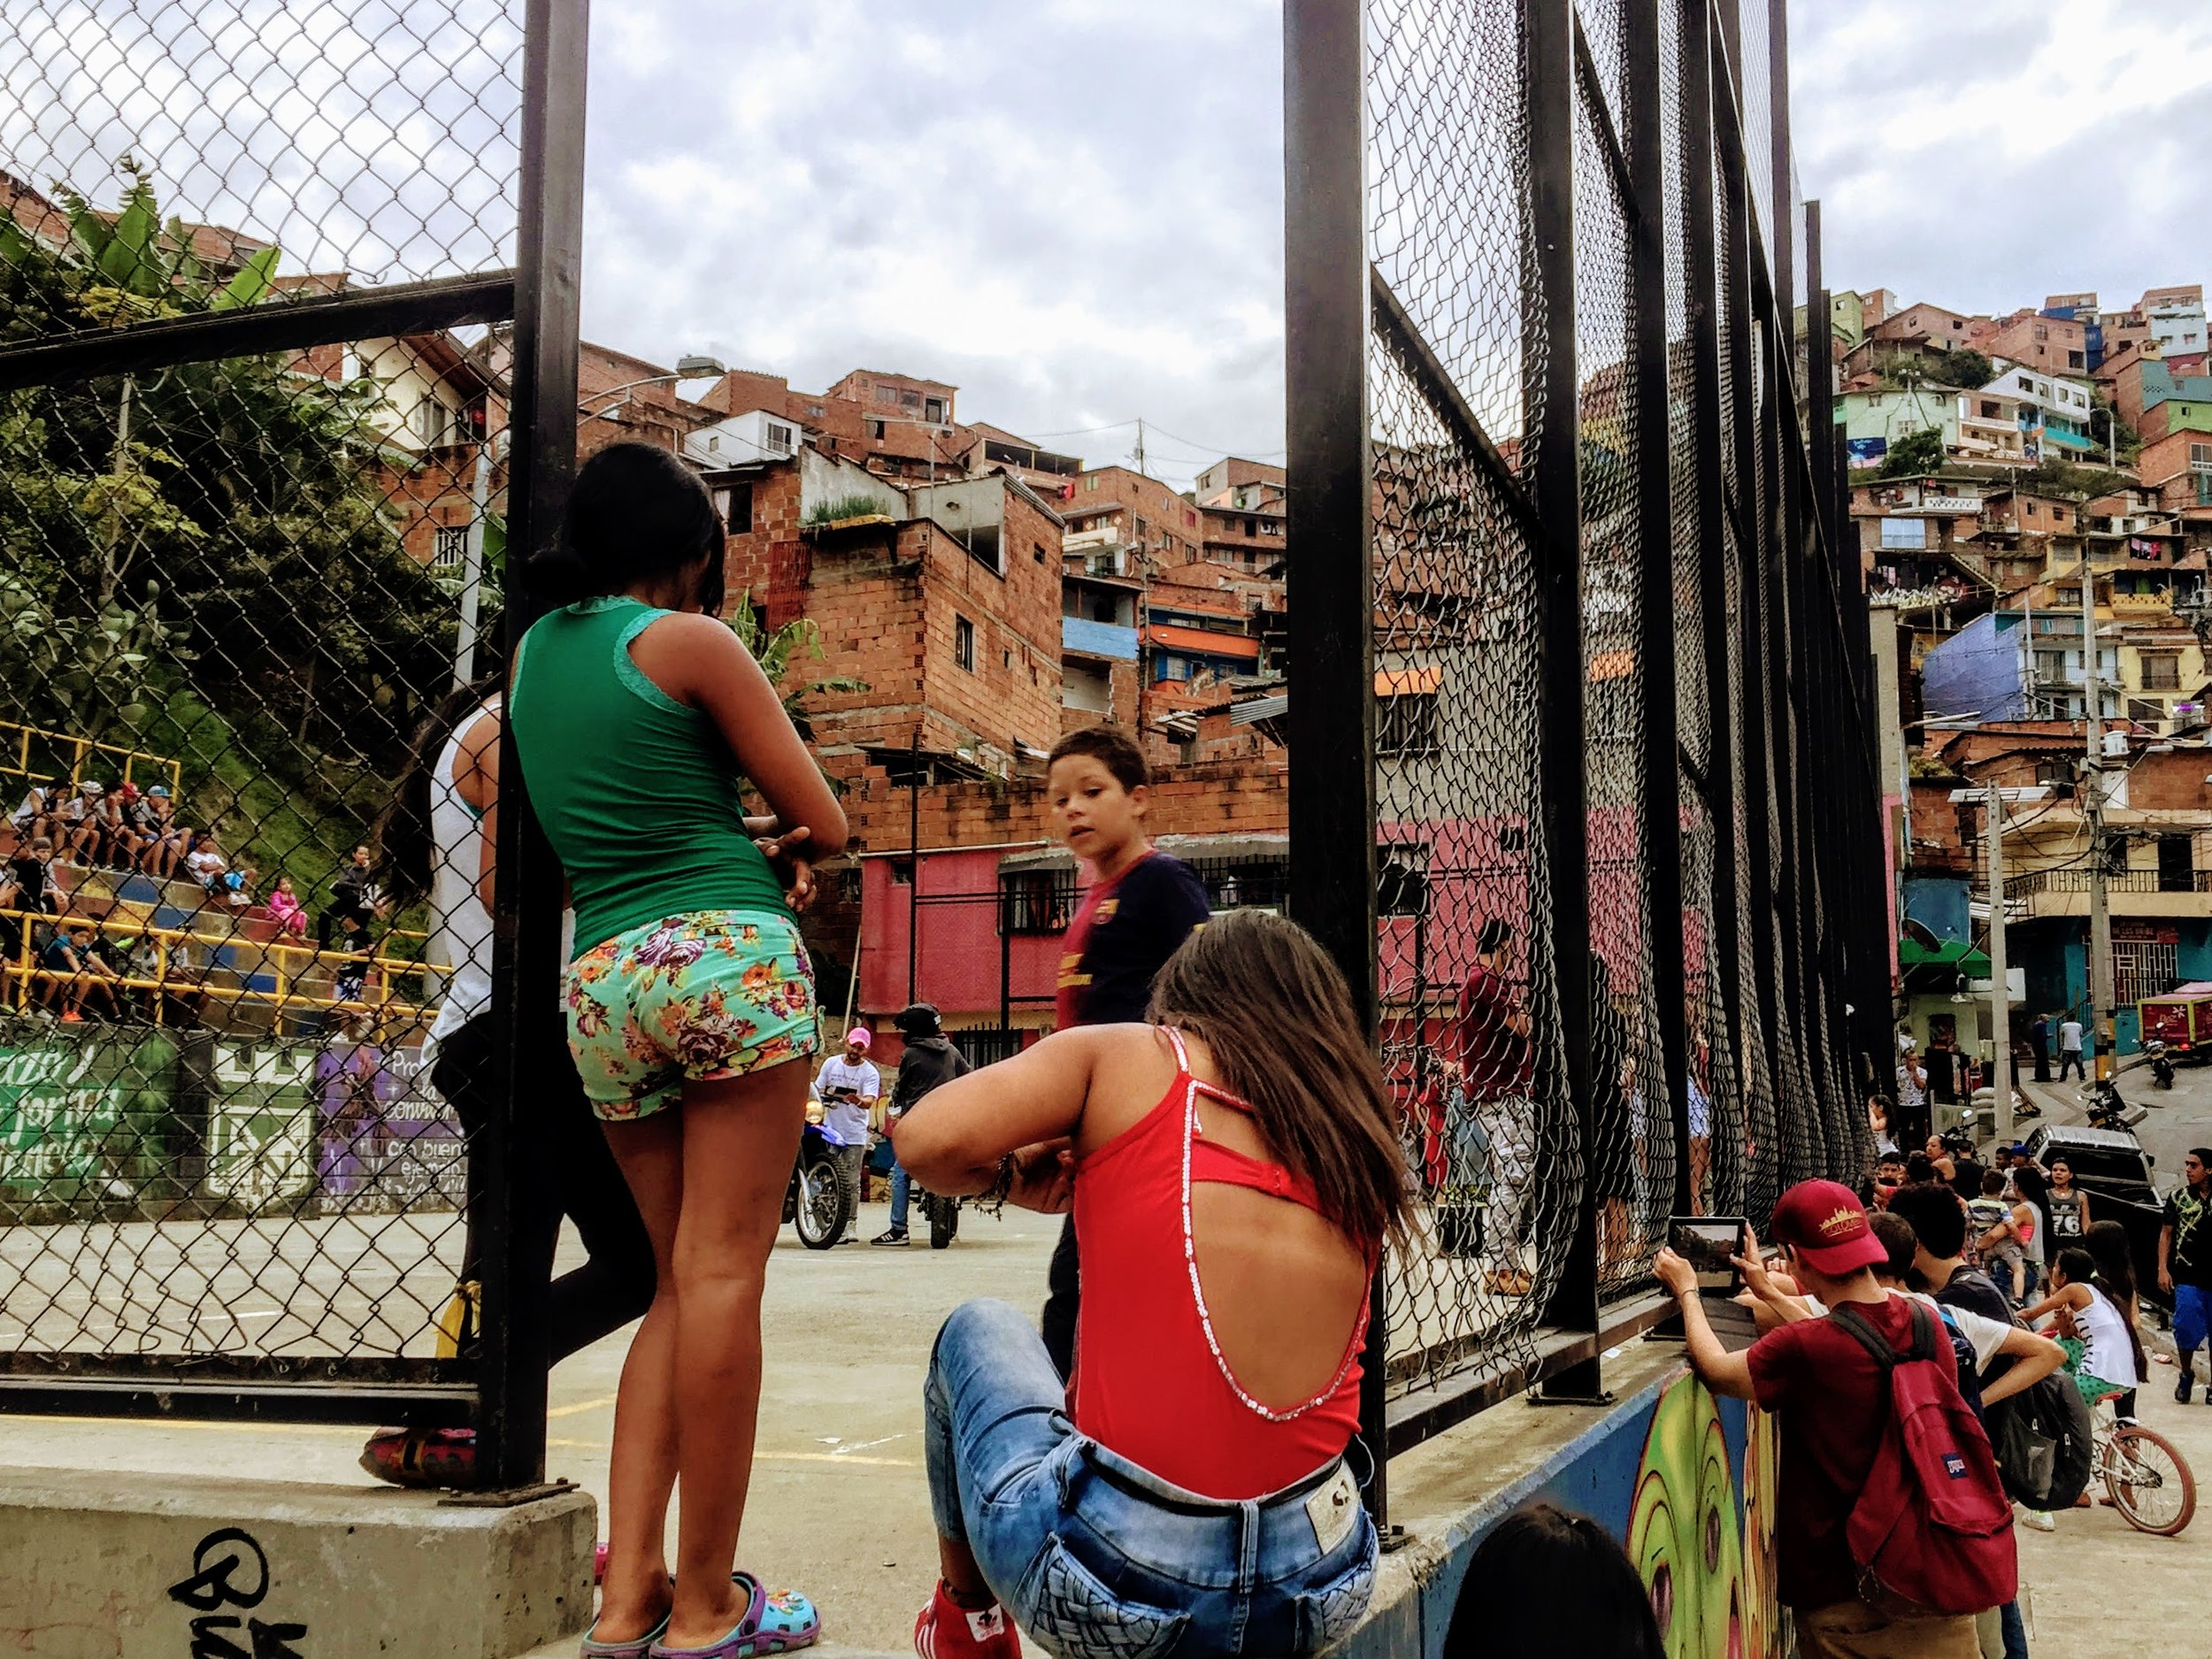 That time we stumbled upon a reggaeton music video being filmed in Medellin, Colombia - where some of the artists on this playlist were born. The genre originated in Puerto Rico.